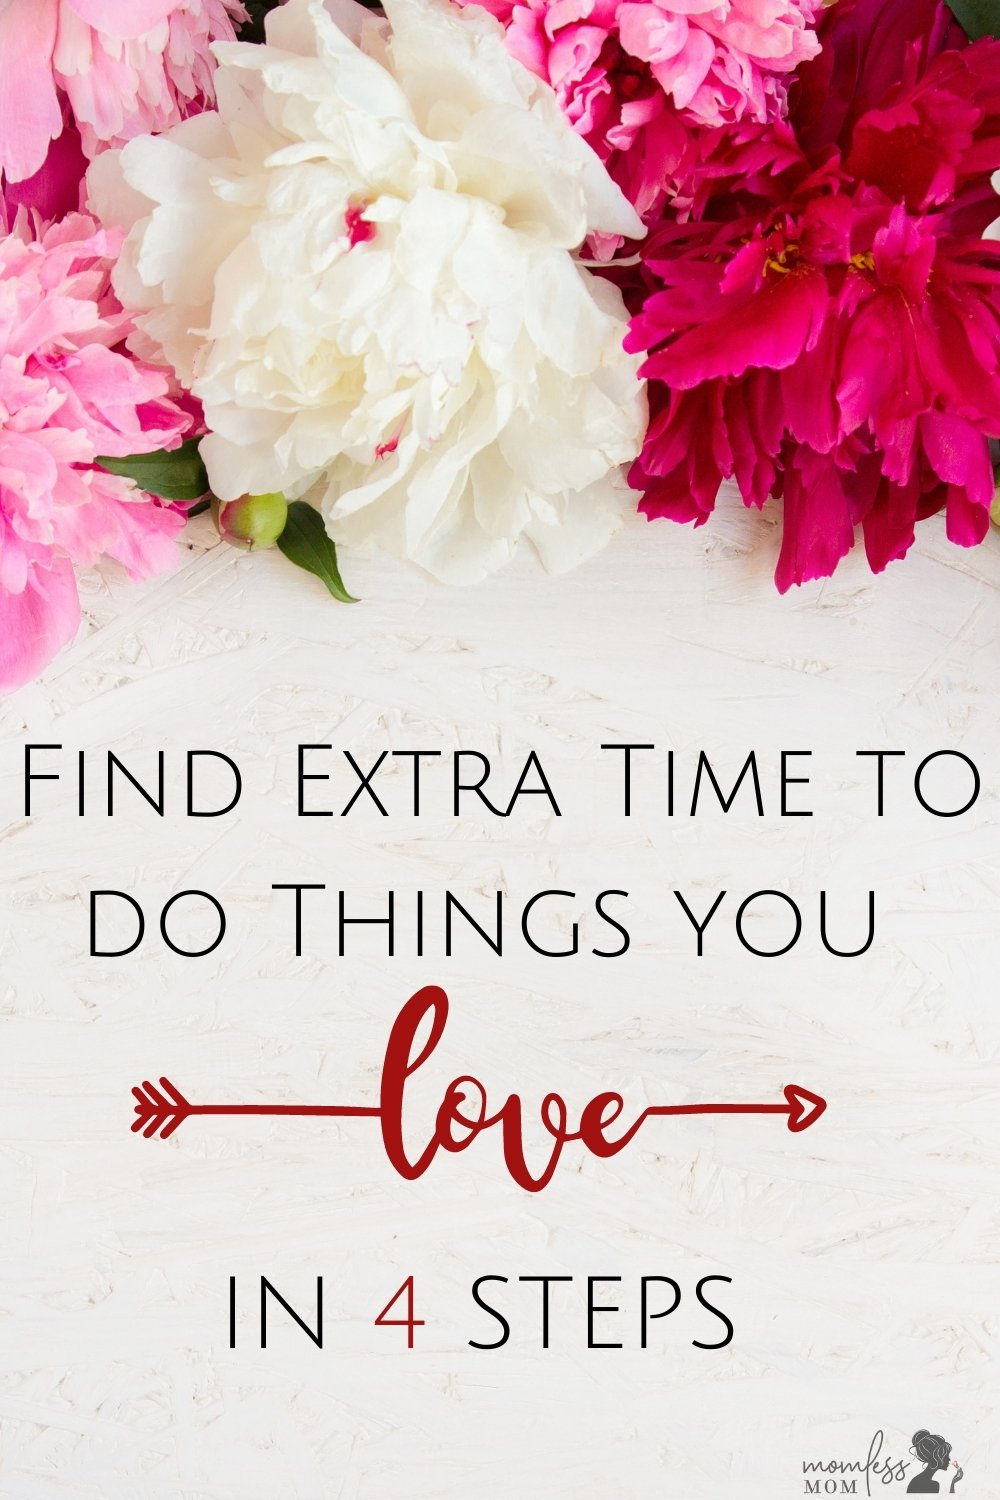 4 steps to find extra time to do things you love